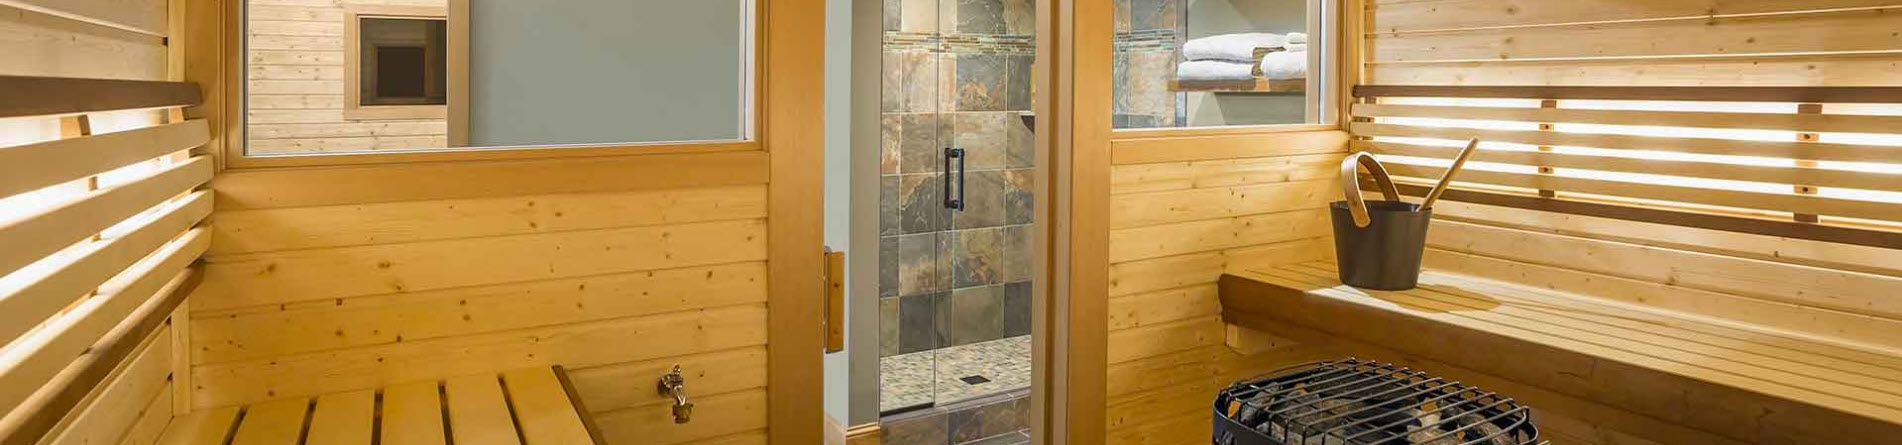 Infrared Sauna for Natural Pain Relief, Saunas Urbandale